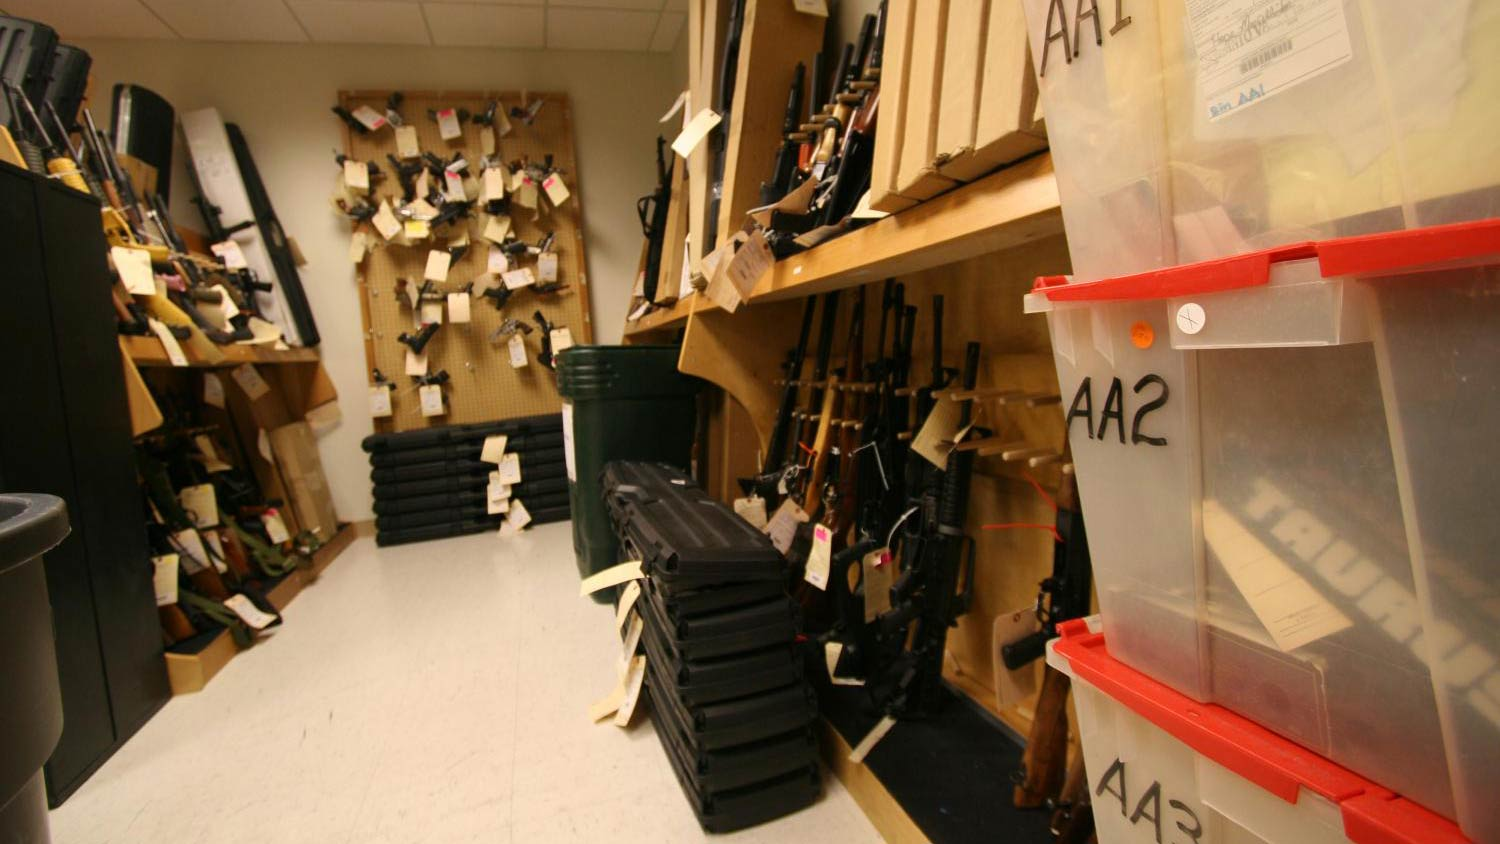 The Bureau of Alcohol, Tobacco and Firearms and Explosives (ATF) vault of seized weapons in Phoenix, Arizona.